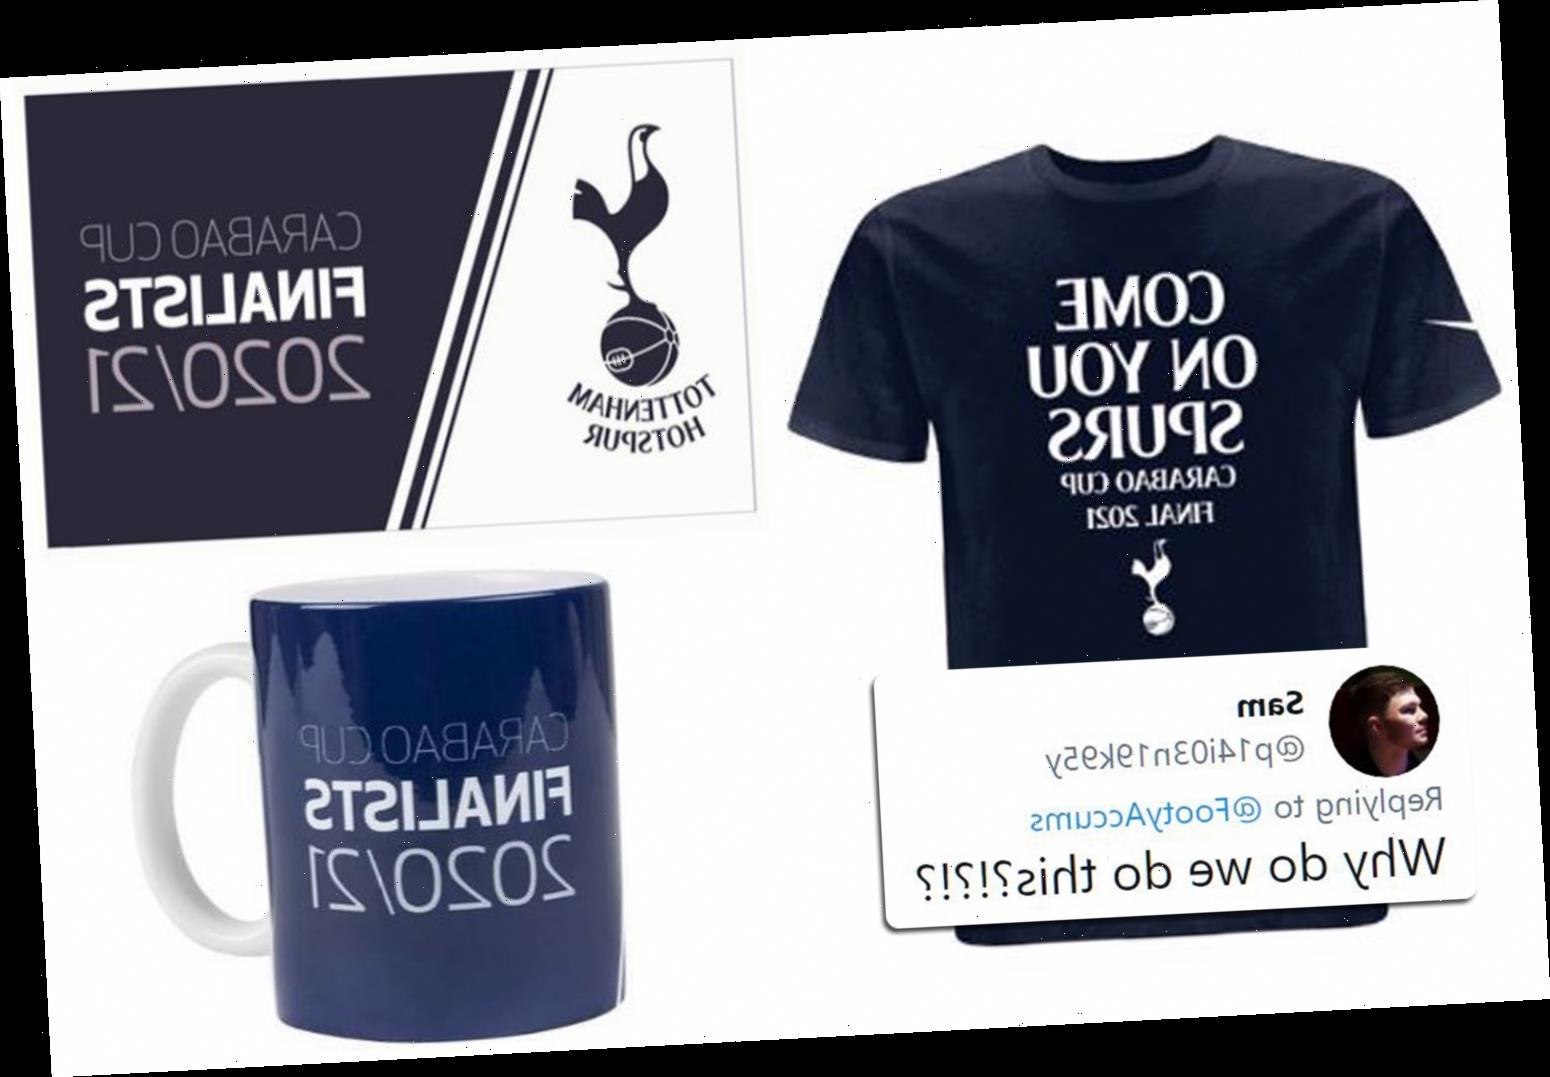 Tottenham brutally trolled for flogging Carabao Cup final merchandise as embarrassed Spurs fan asks 'why do we do this?'